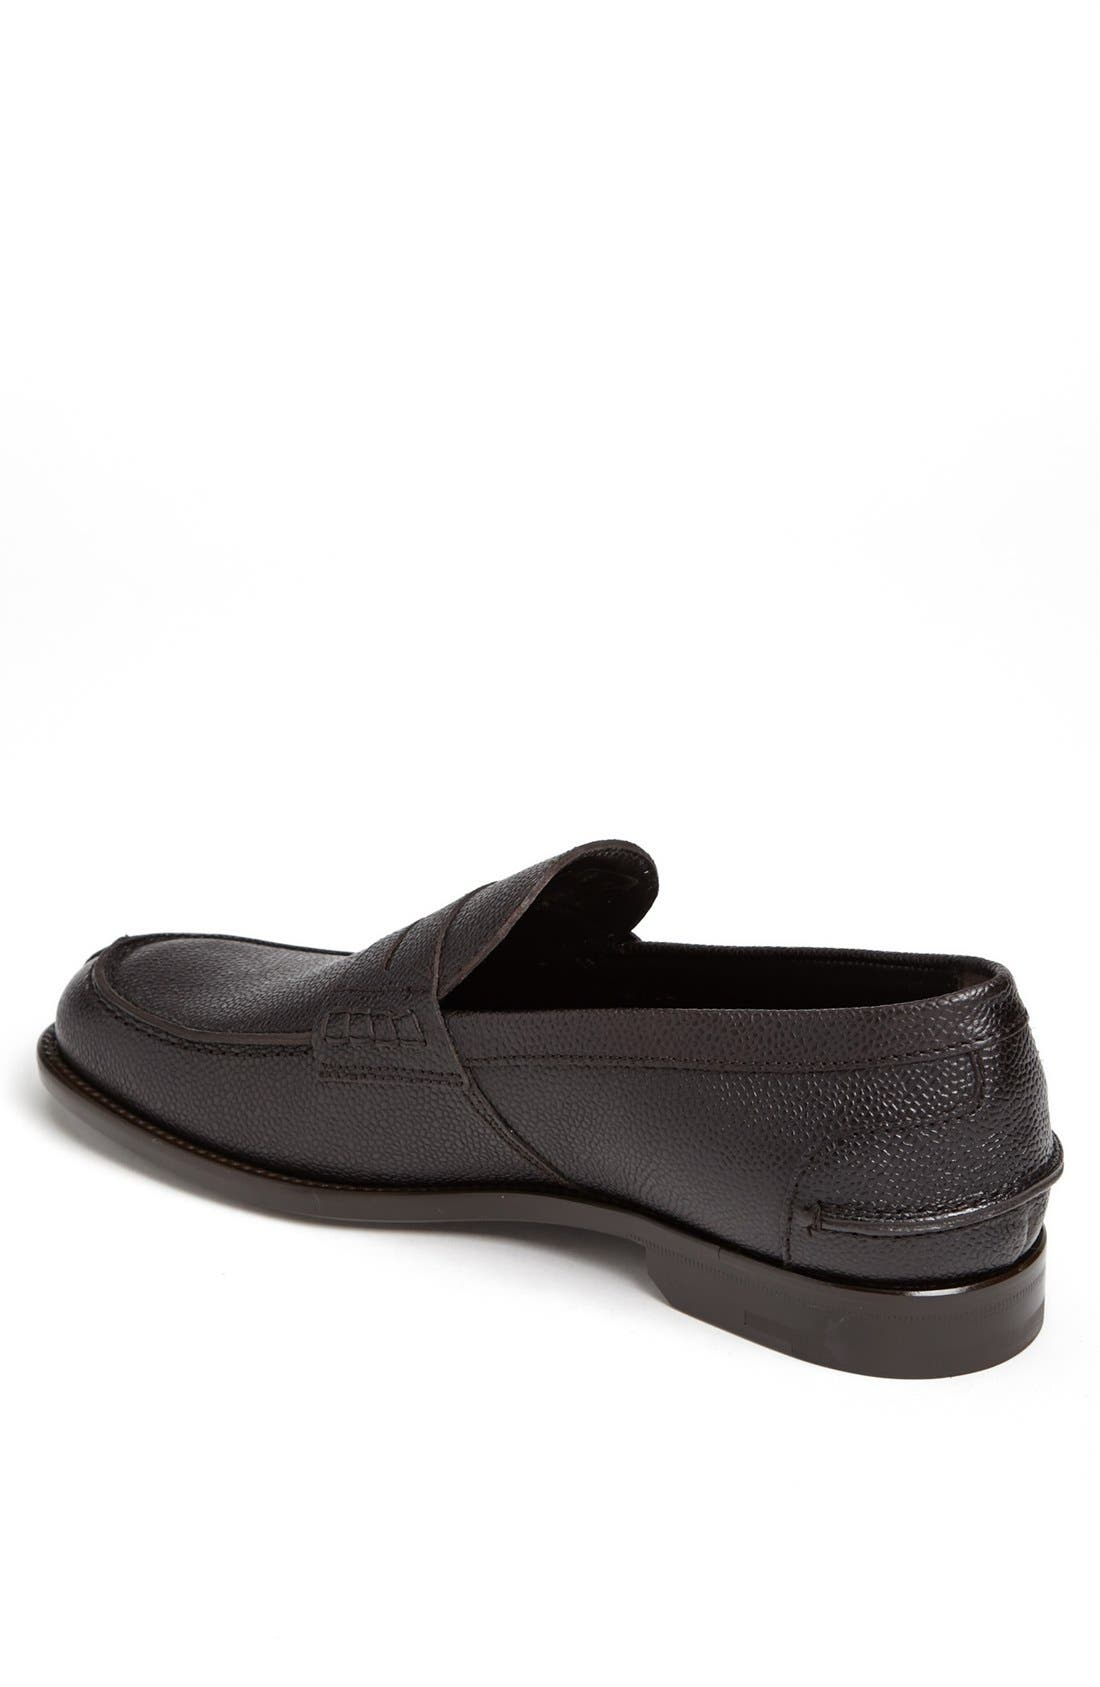 Alternate Image 2  - Ermenegildo Zegna 'College' Penny Loafer